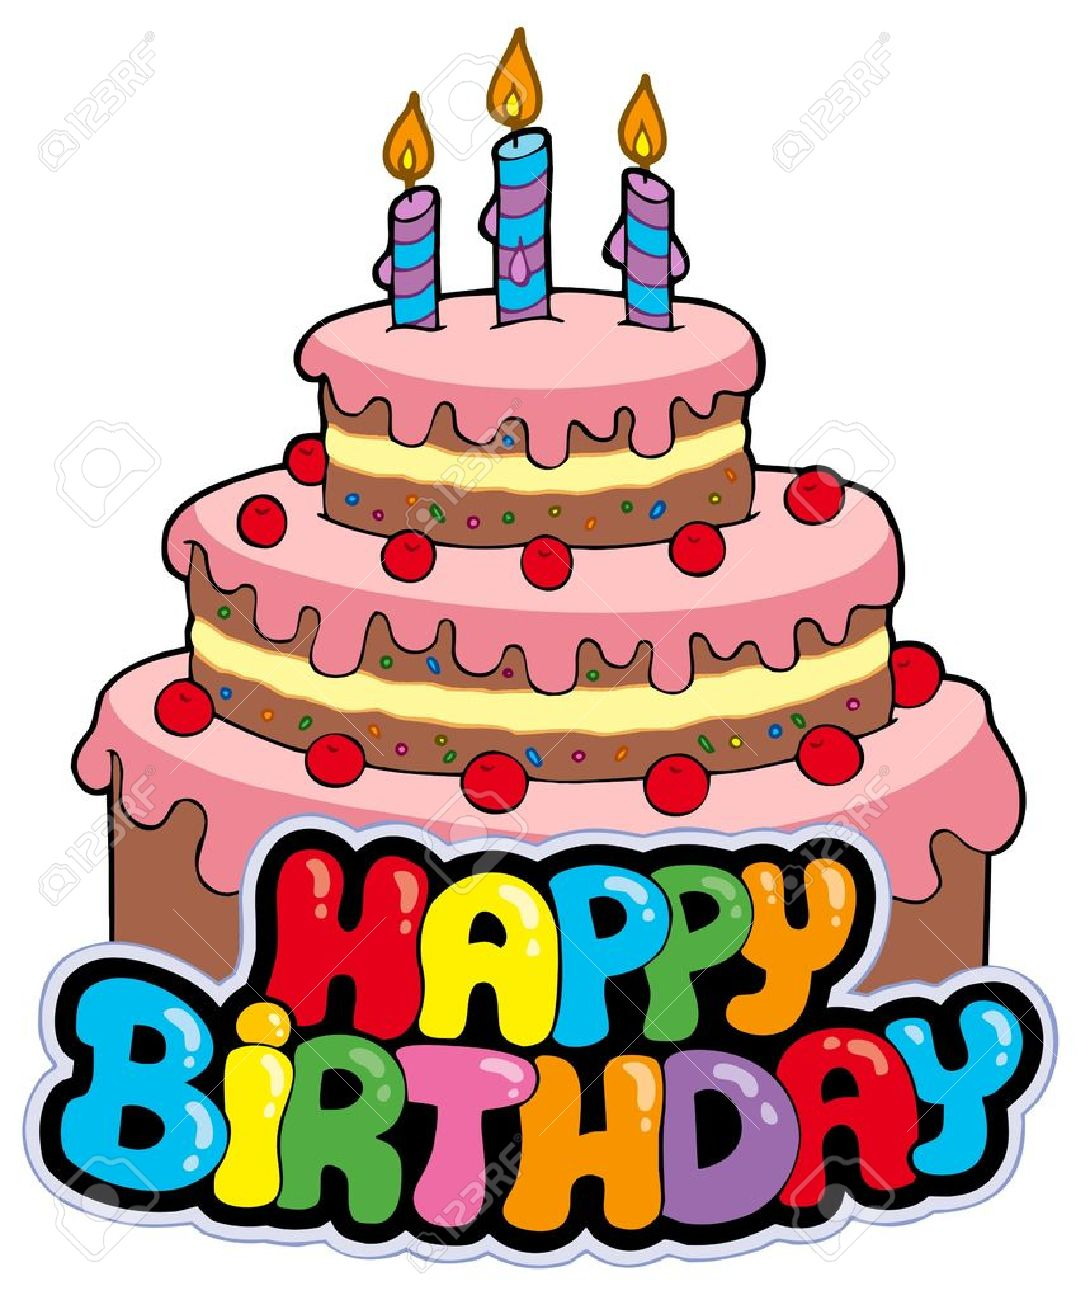 Happy birthday sign with cake - illustration. Stock Vector - 7929357